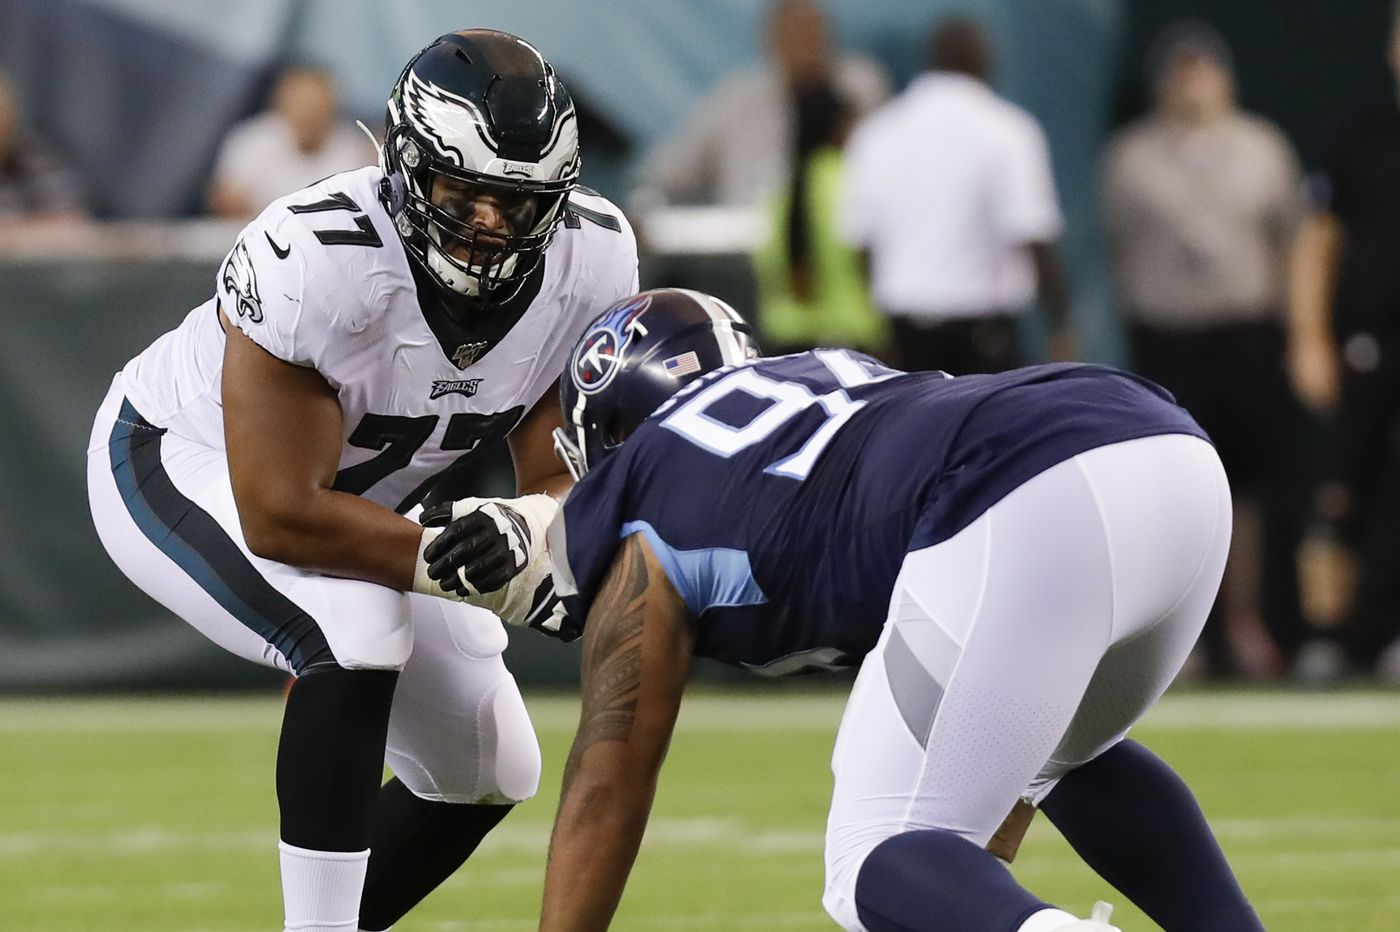 Andre Dillard gave Eagles a glimpse of their future in NFL debut | David Murphy